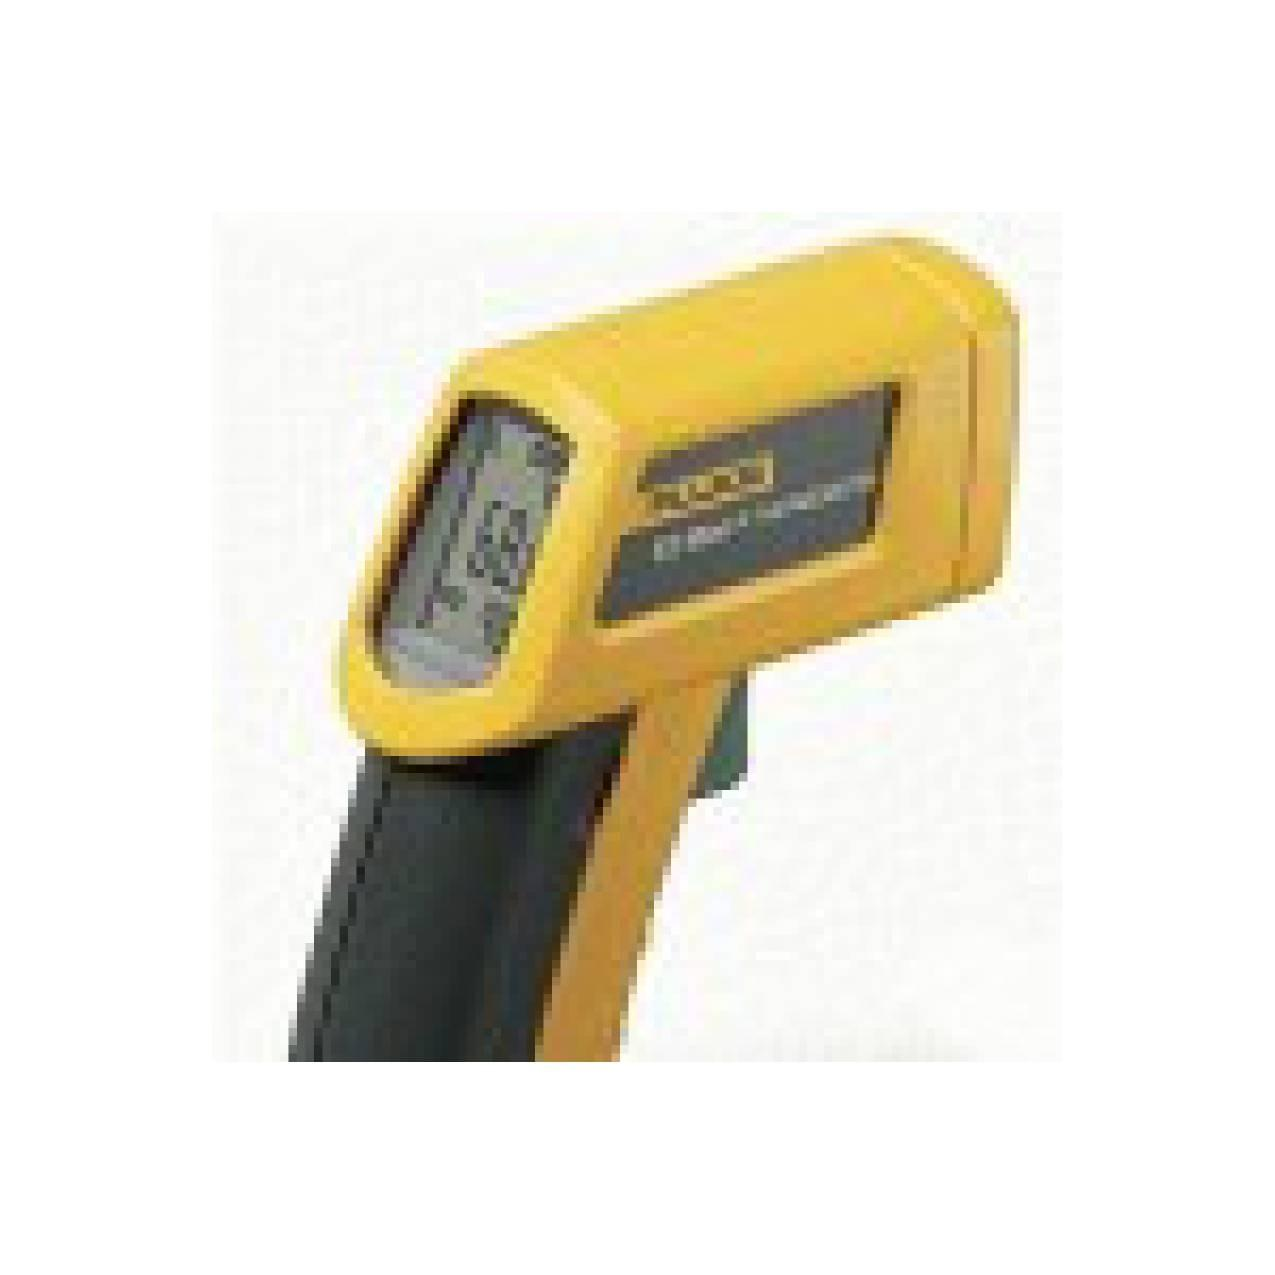 Fluke - Thermometer - Fluke 62 MAX+ Infrared Thermometers